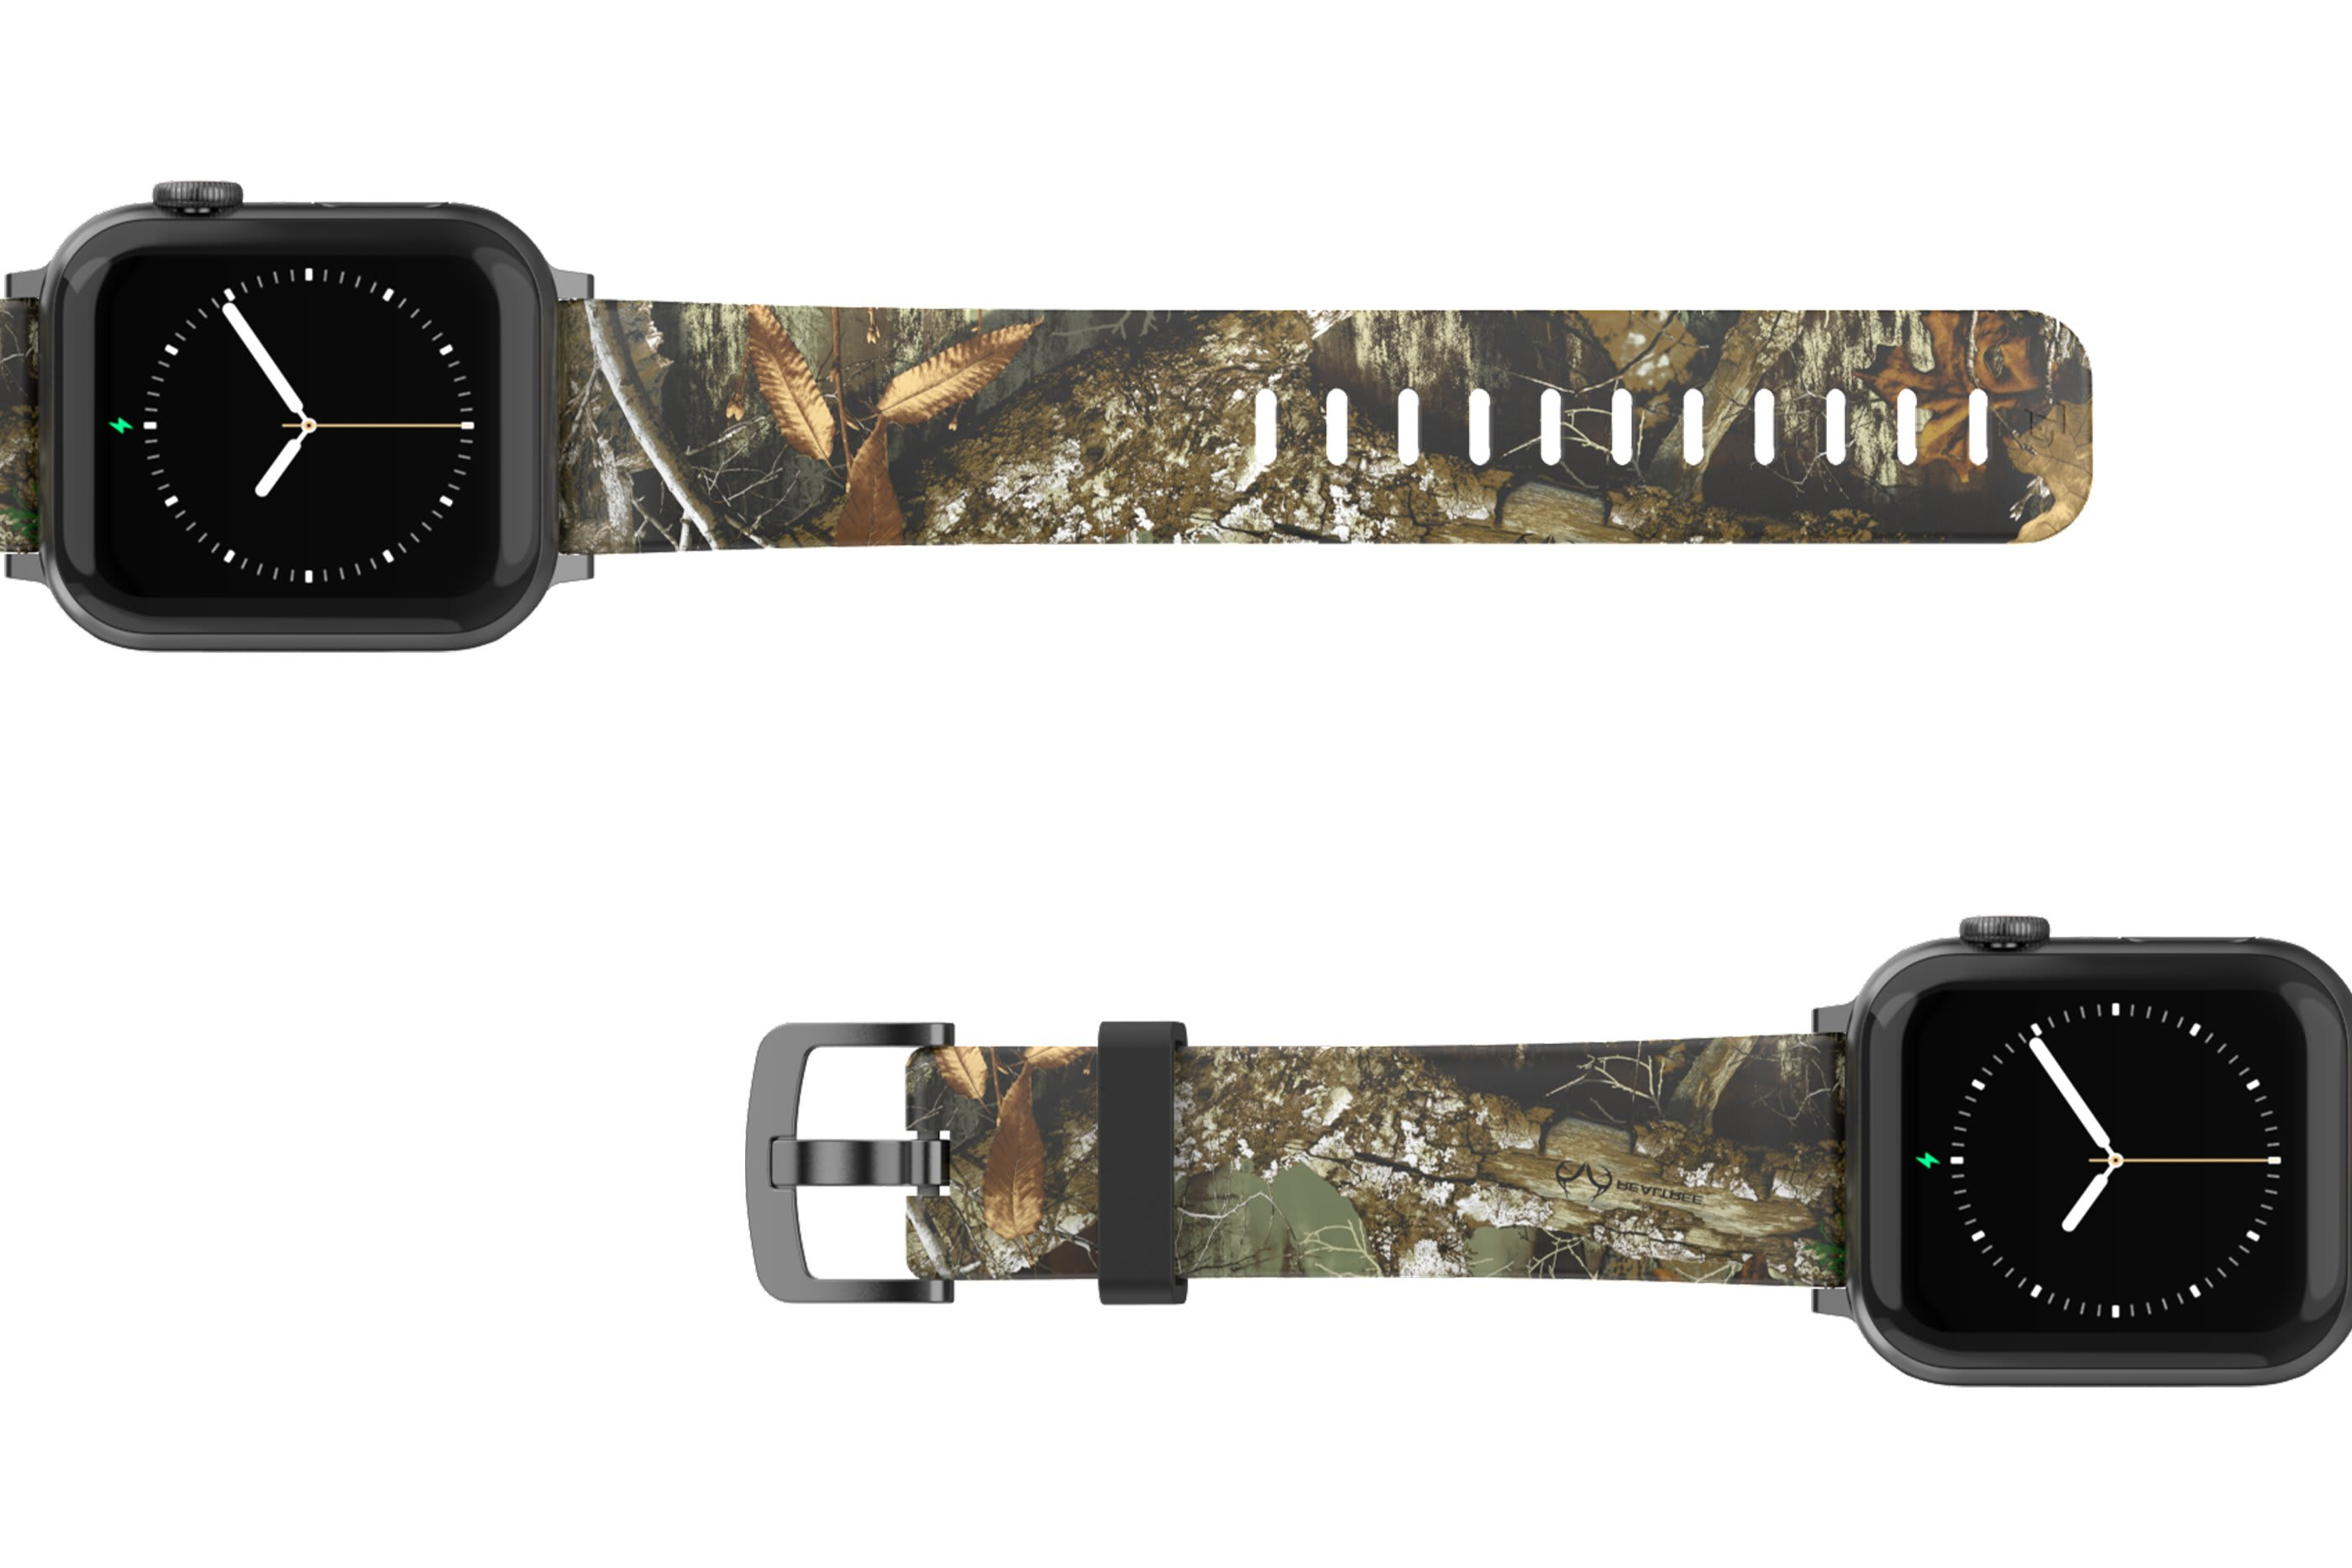 Realtree Edge Apple Watch band with gray hardware viewed top down